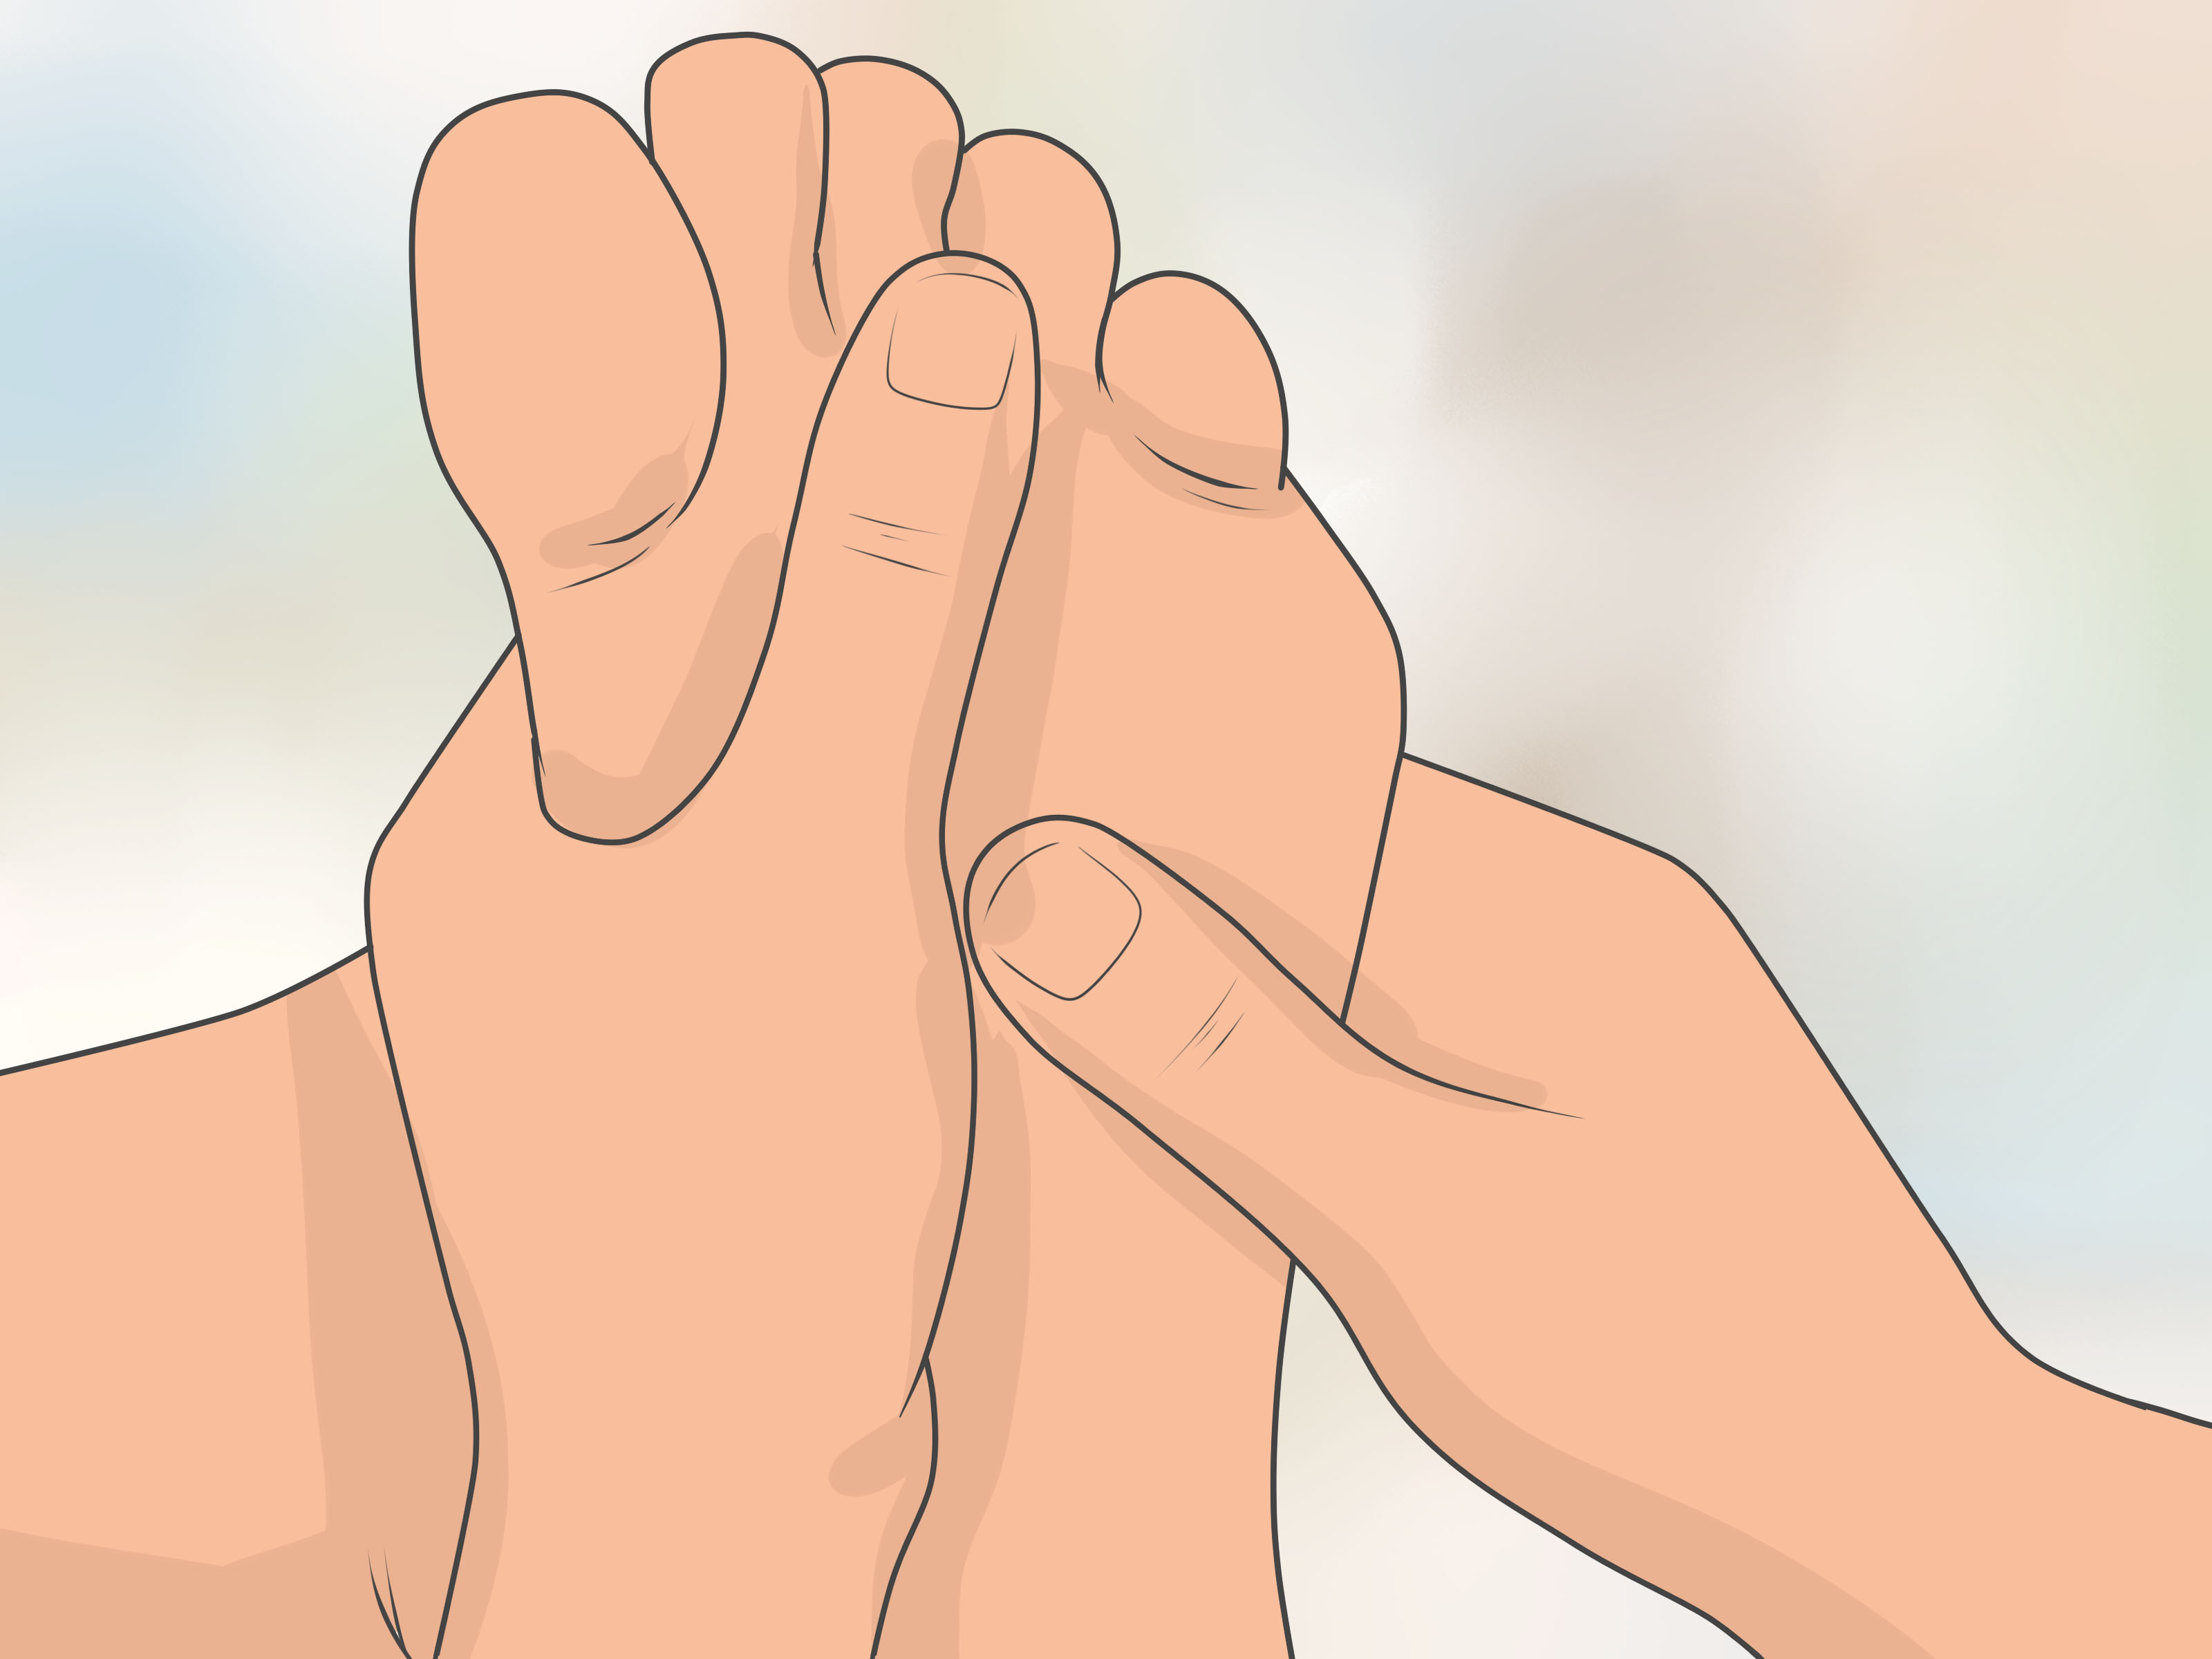 Foot Reflexology Diagram How To Read A Foot Reflexology Chart 10 Steps With Pictures